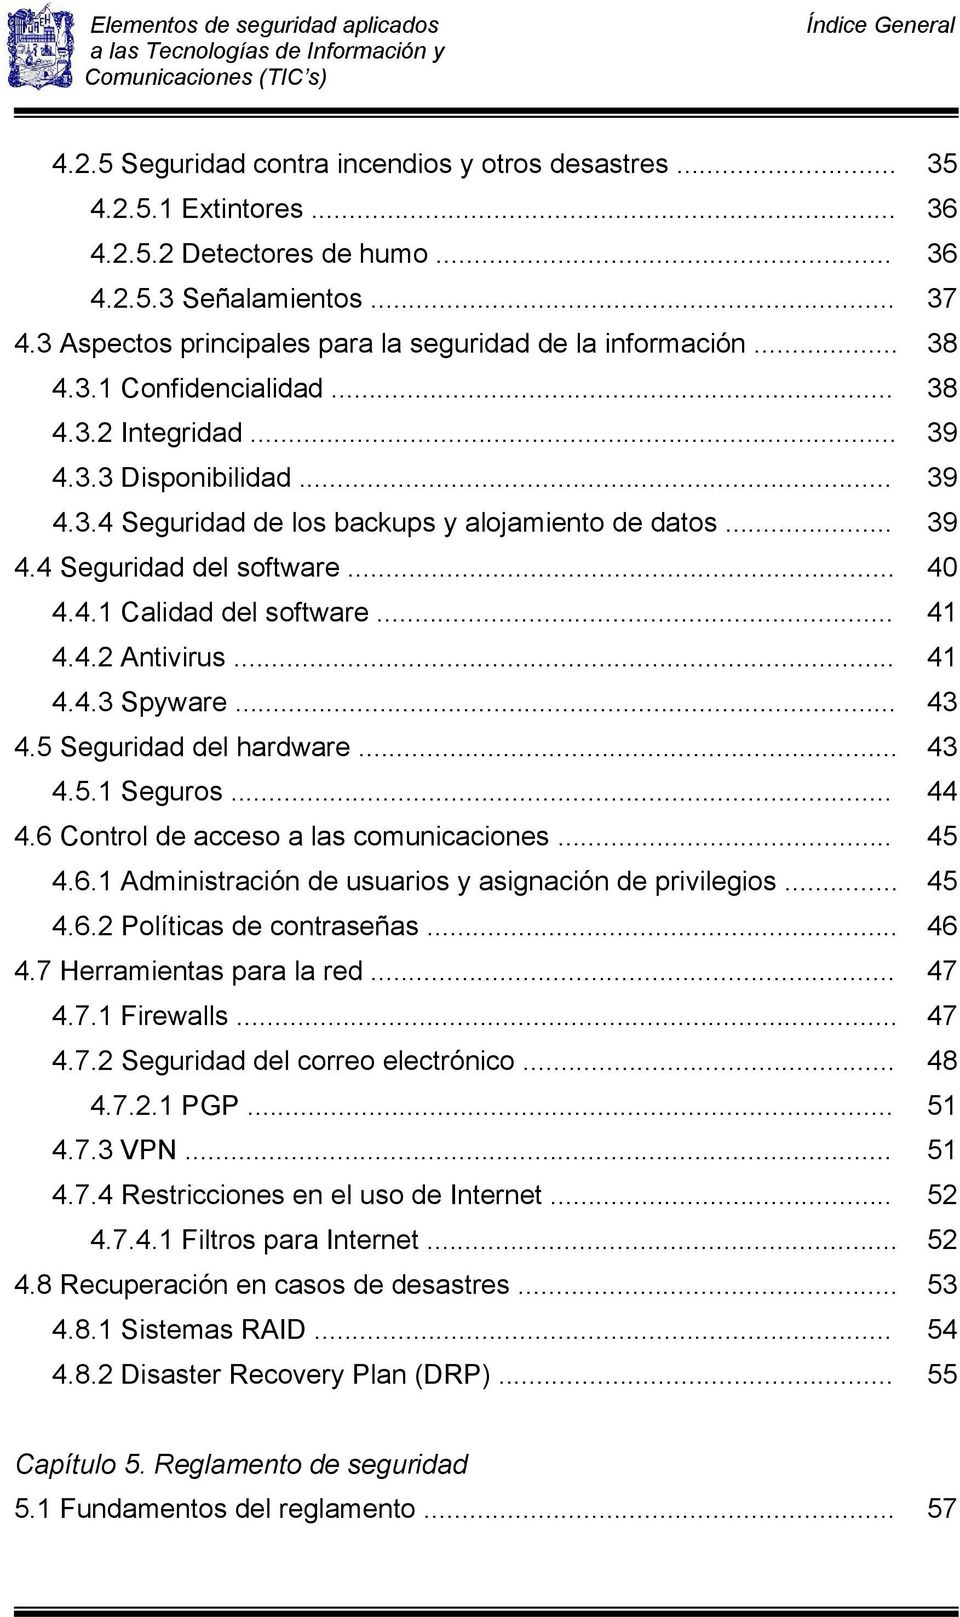 .. 39 4.4 Seguridad del software... 40 4.4.1 Calidad del software... 41 4.4.2 Antivirus... 41 4.4.3 Spyware... 43 4.5 Seguridad del hardware... 43 4.5.1 Seguros... 44 4.